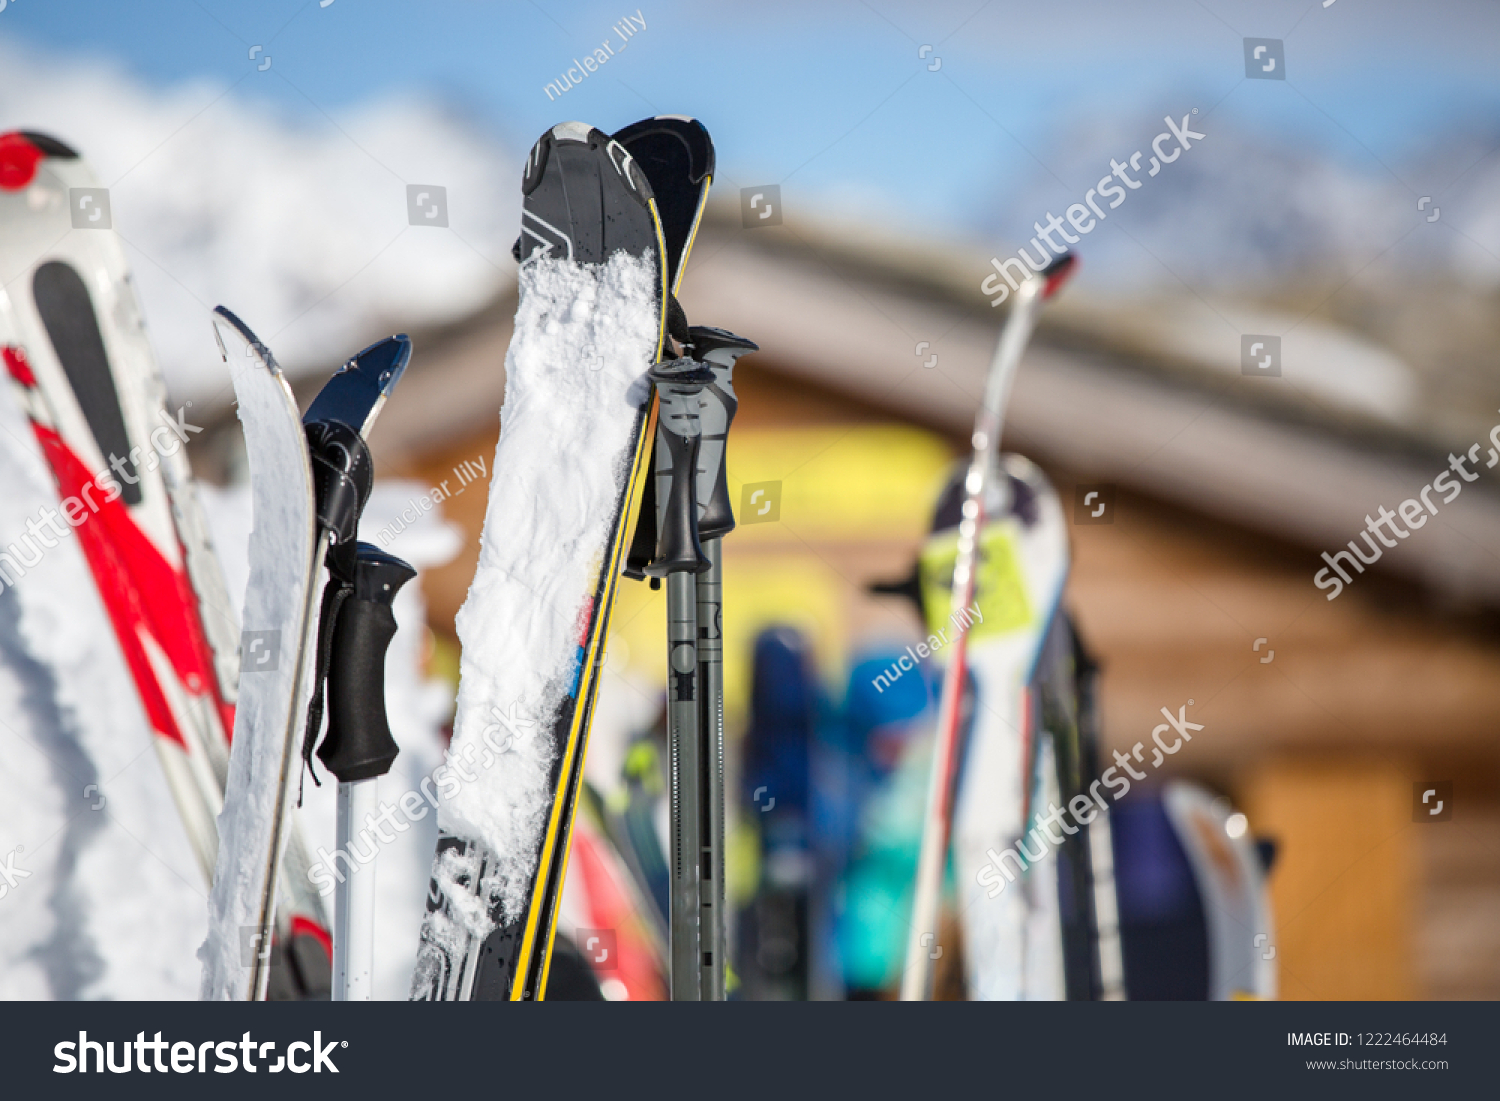 Image of multi-colored skis in snow at winter resort in afternoon. #1222464484